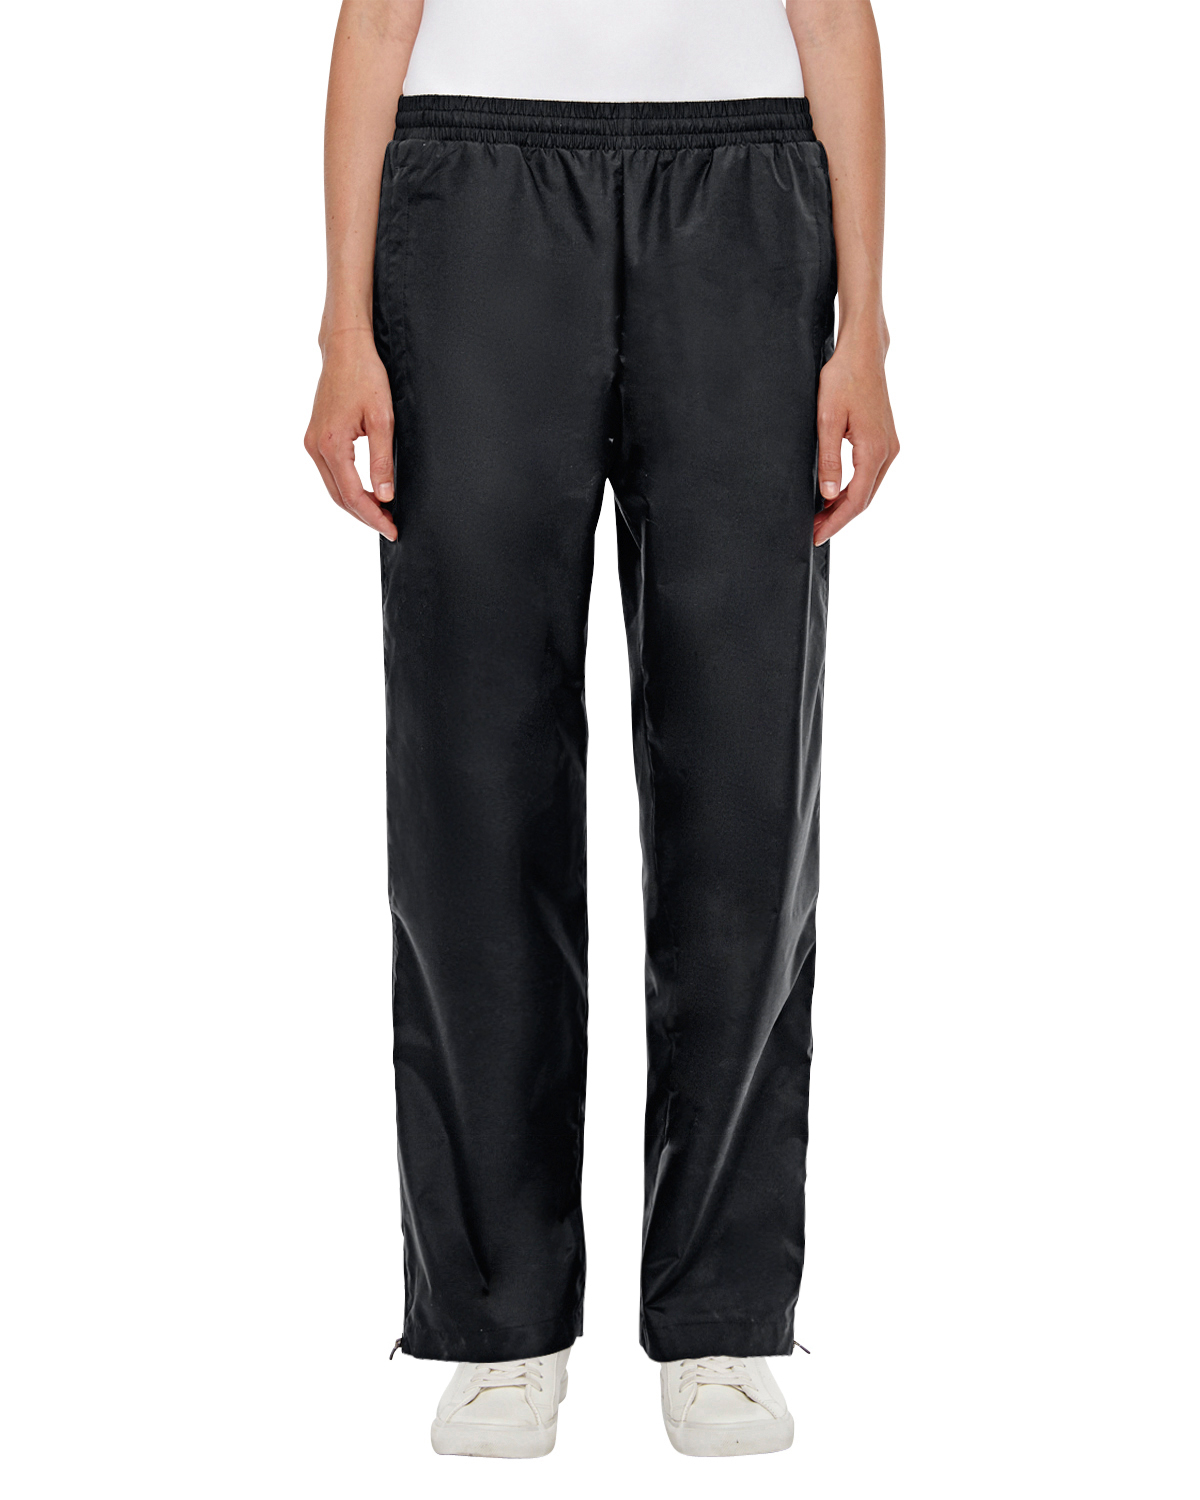 Team 365 TT48W - Ladies' Conquest Athletic Woven Pants